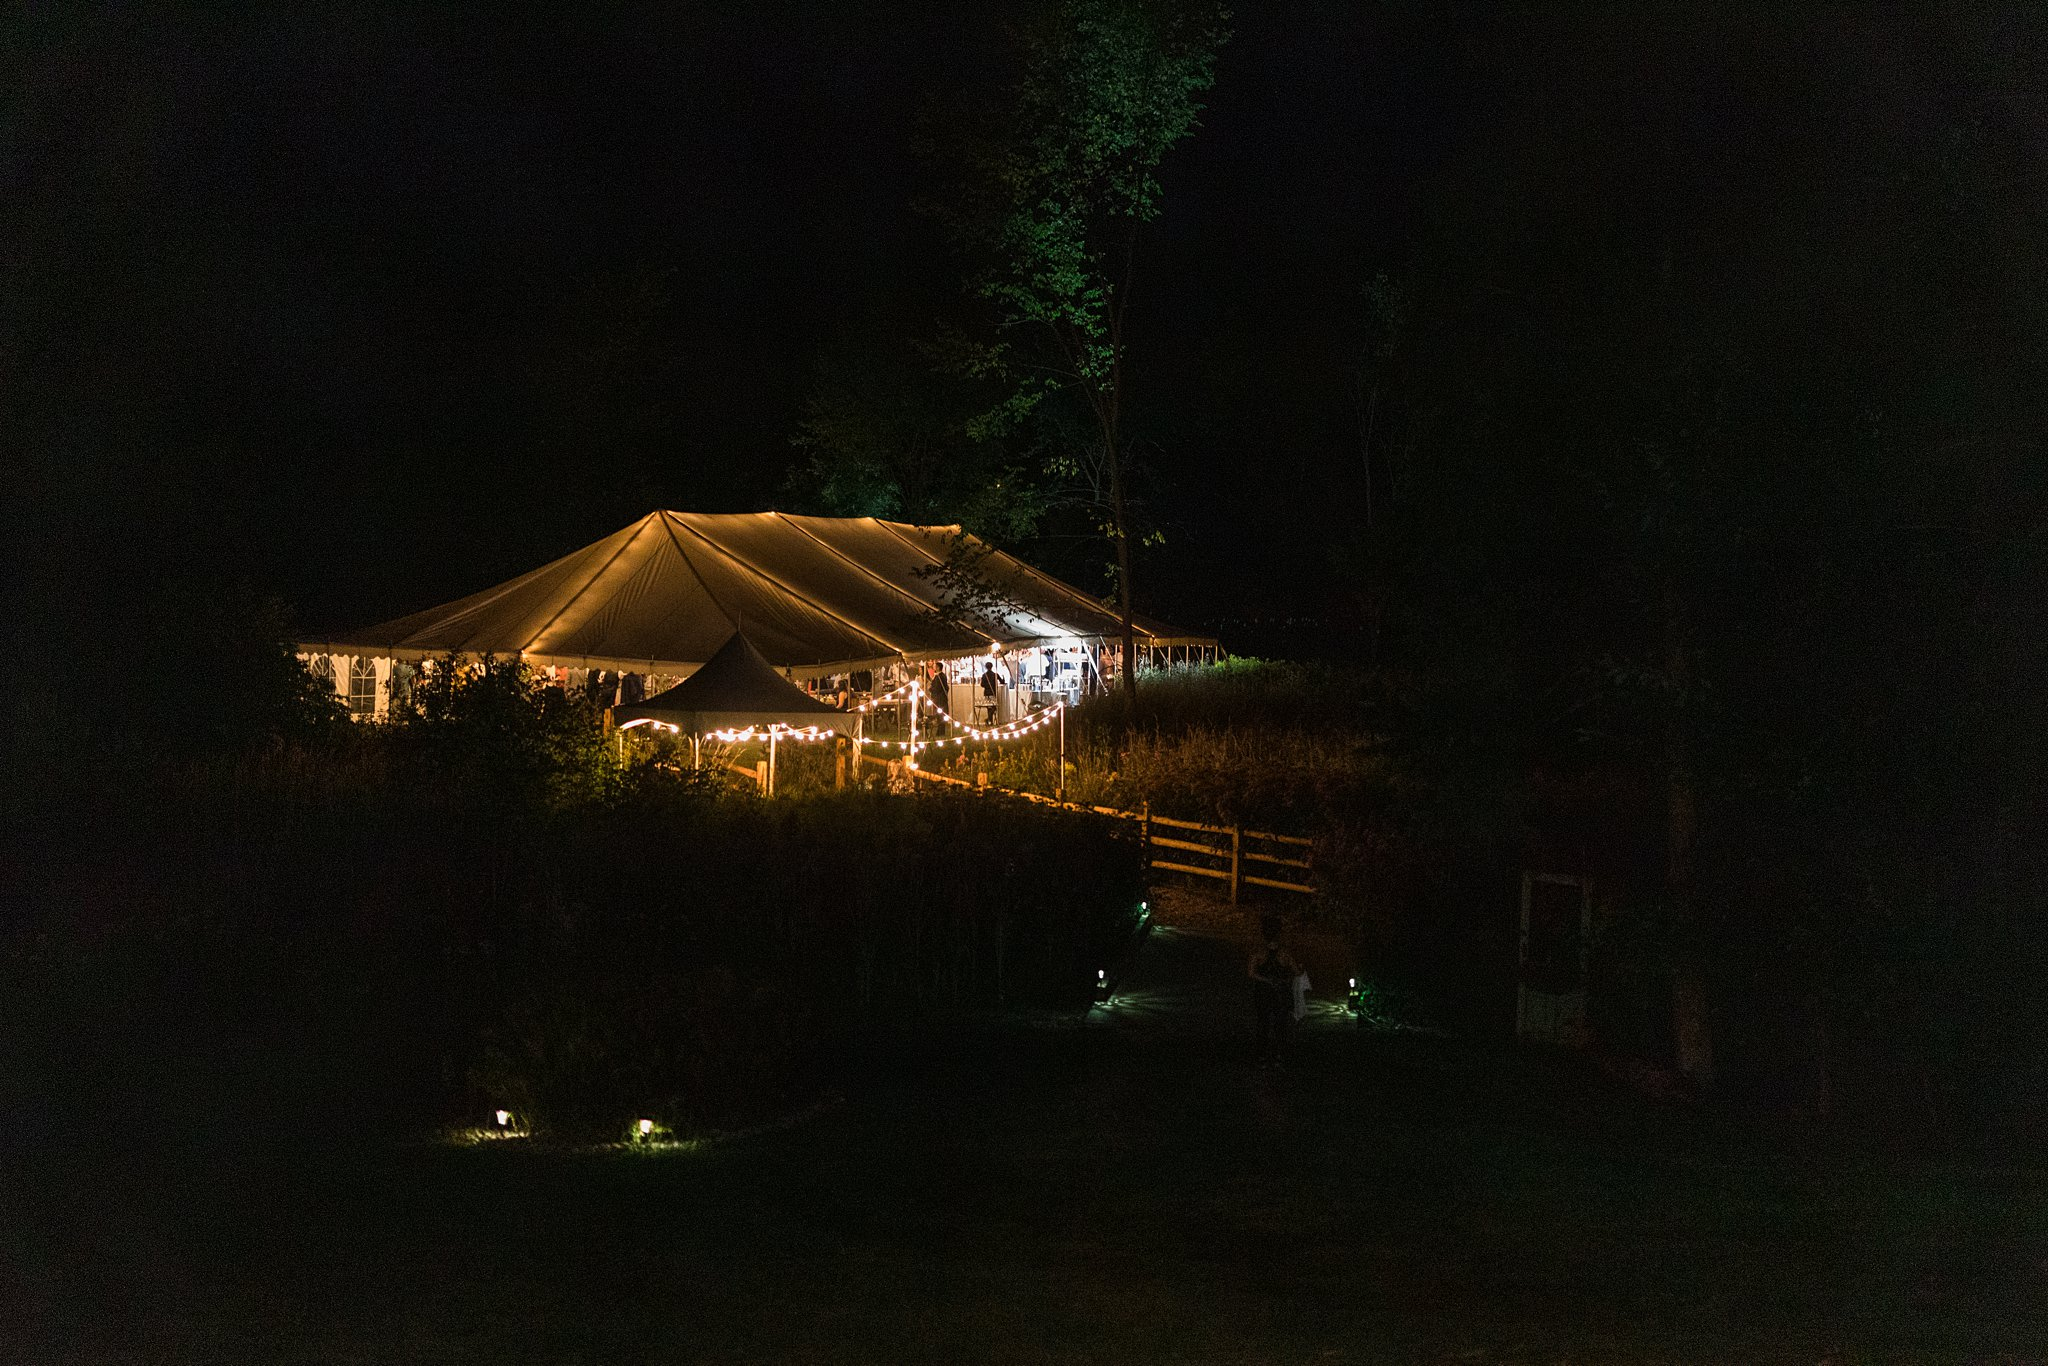 Night time reception, string lights, Private Estate Wedding Photos, Amy Pinder Photography